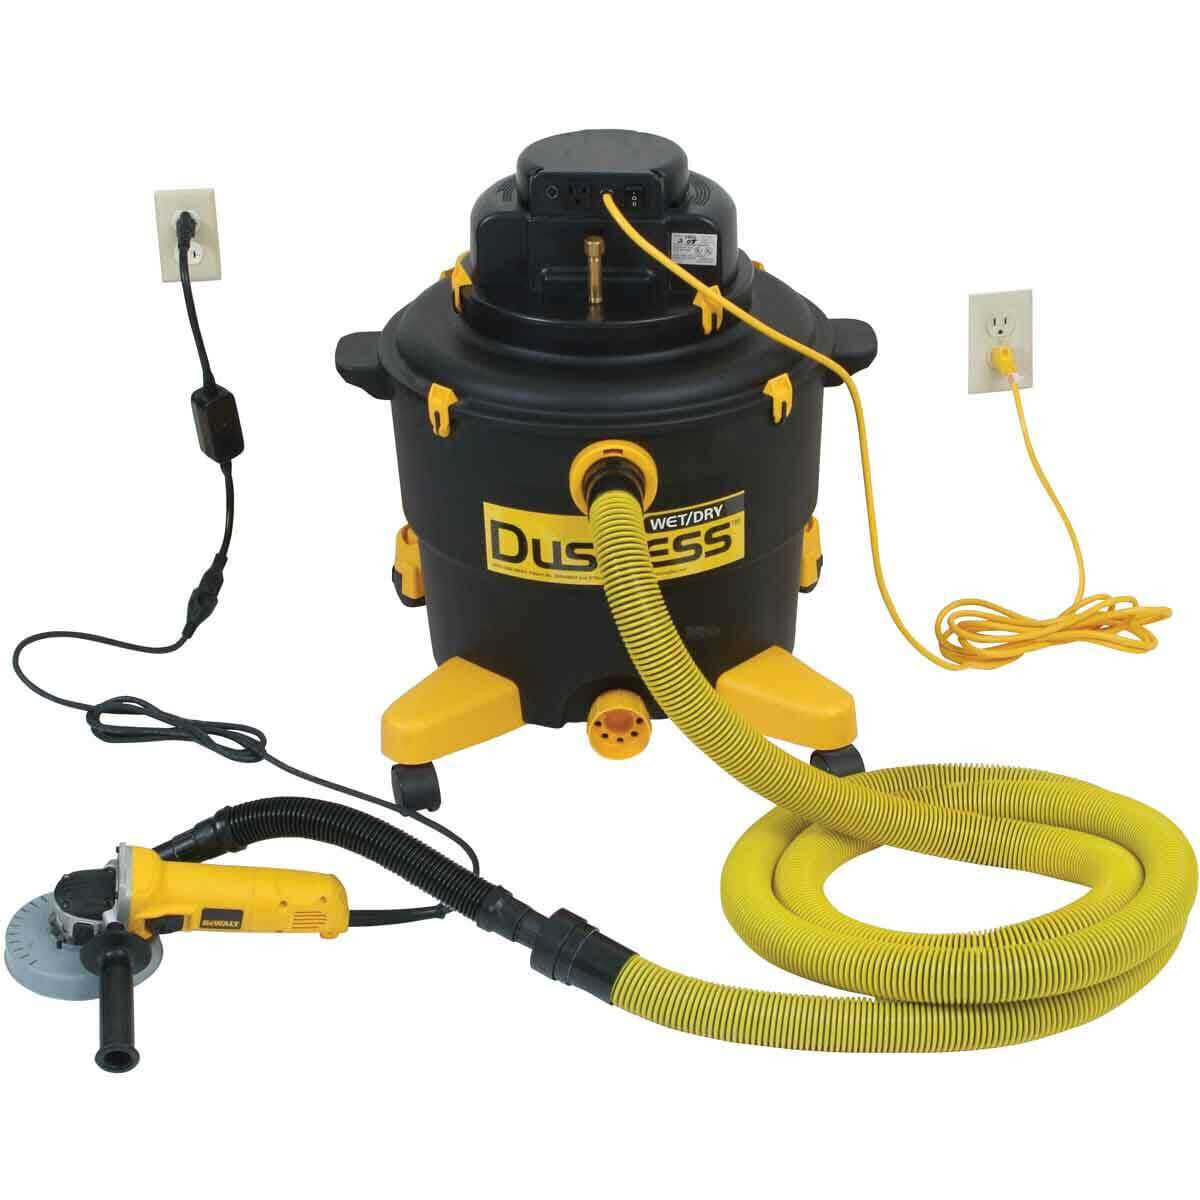 TeqVac Dustless Vacuum with Angle Grinder Set Up